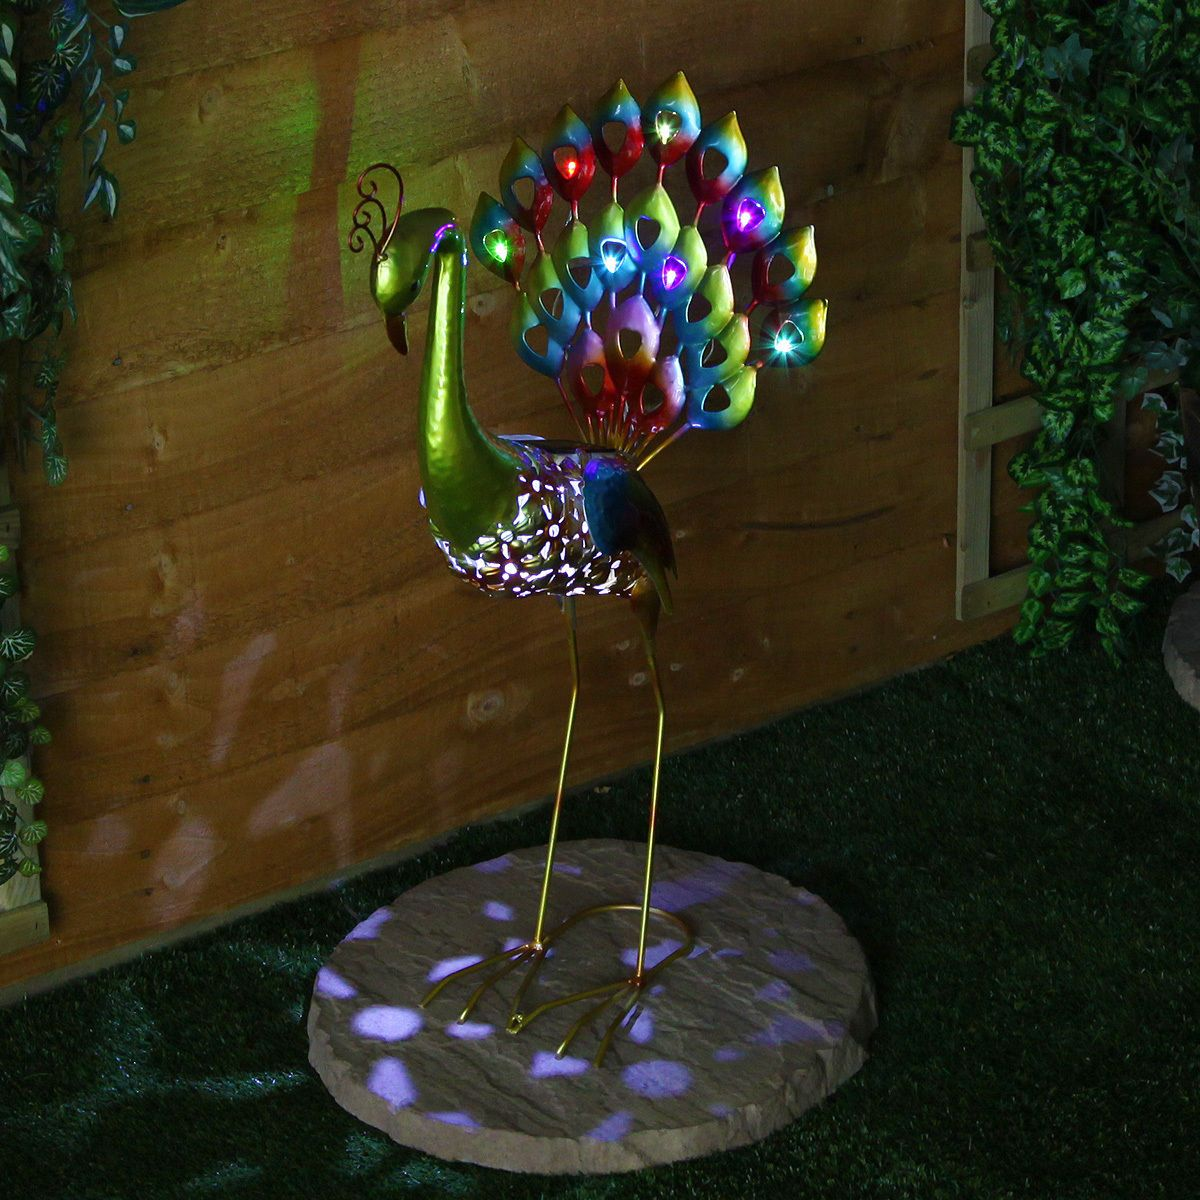 LARGE SOLAR POWERED 8 LED PEACOCK FIGURE NOVELTY OUTDOOR GARDEN